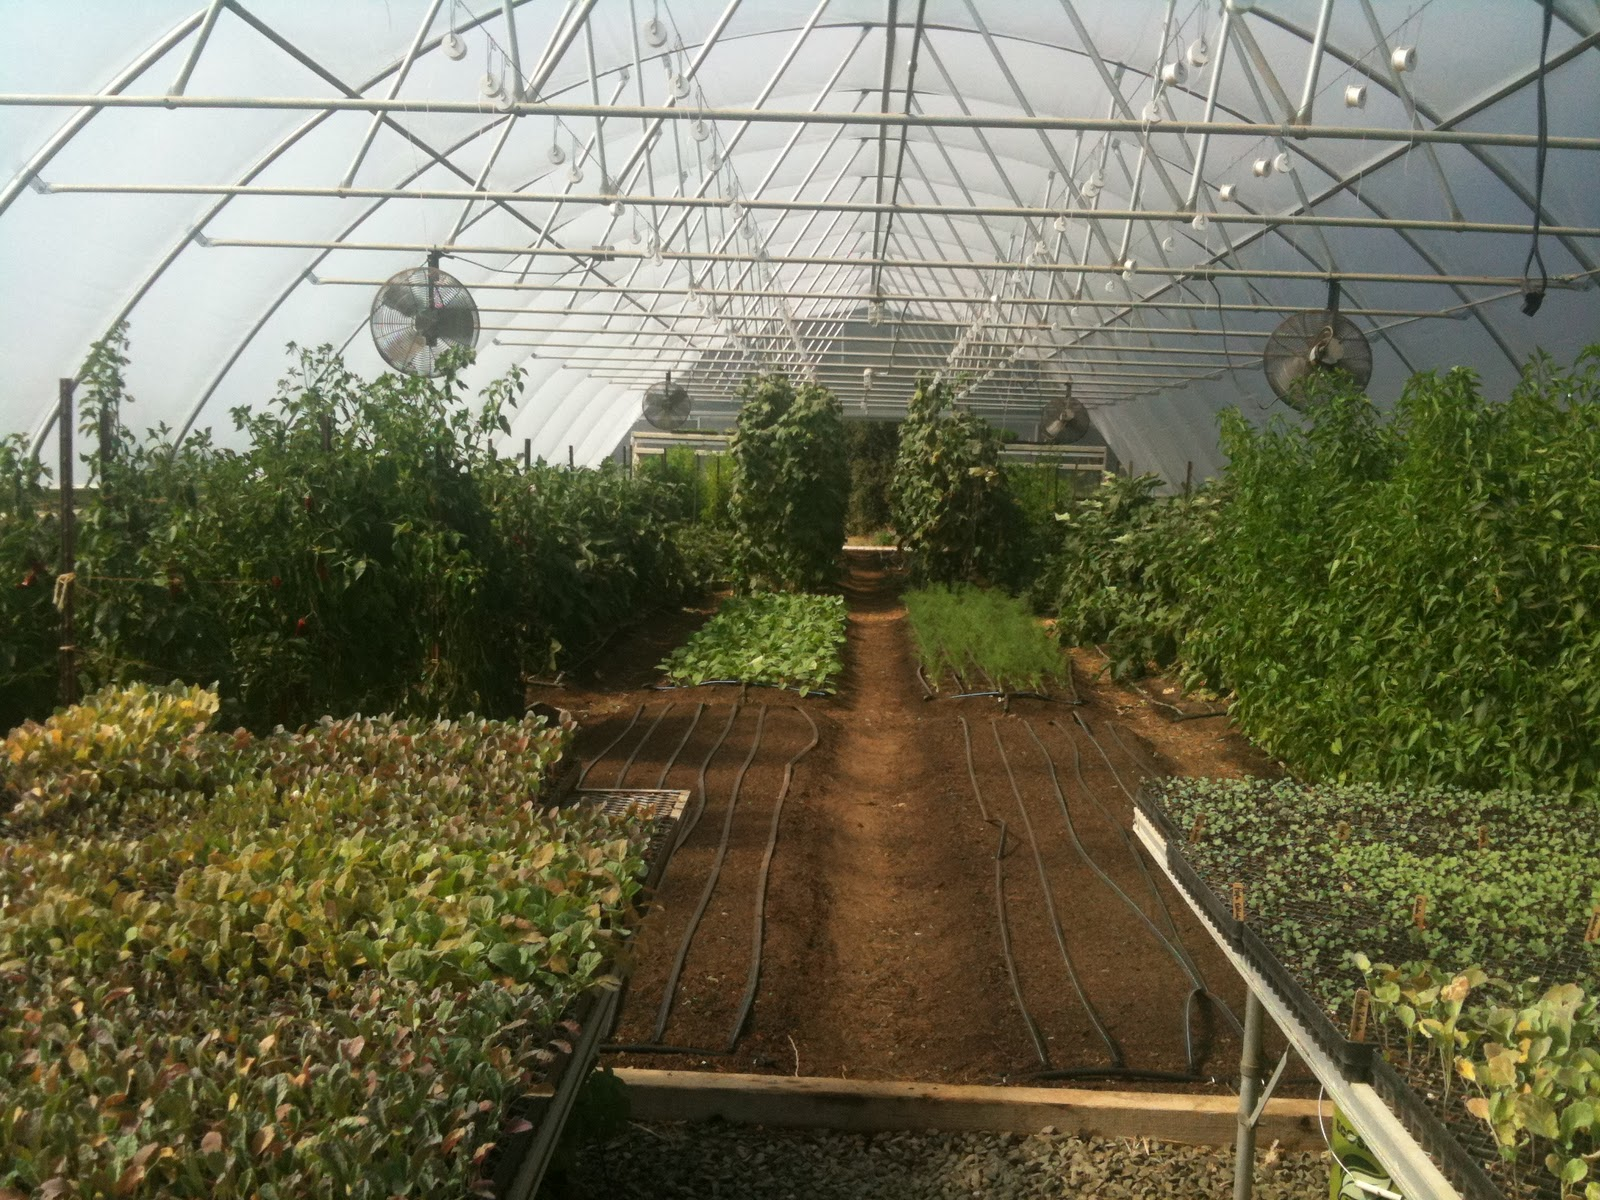 The Potager Advocate: The French Laundry Potager